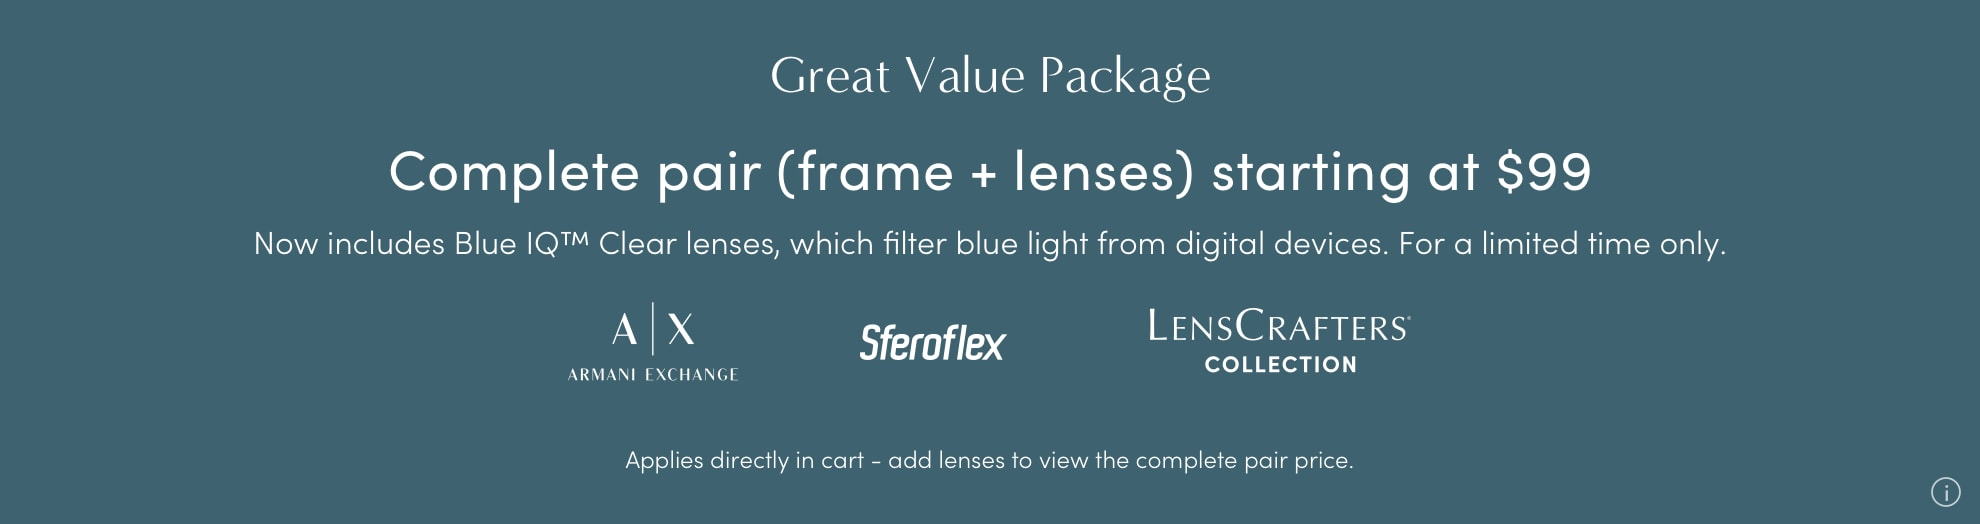 Great Value Frames & Lenses package. Complete pair start at $99.